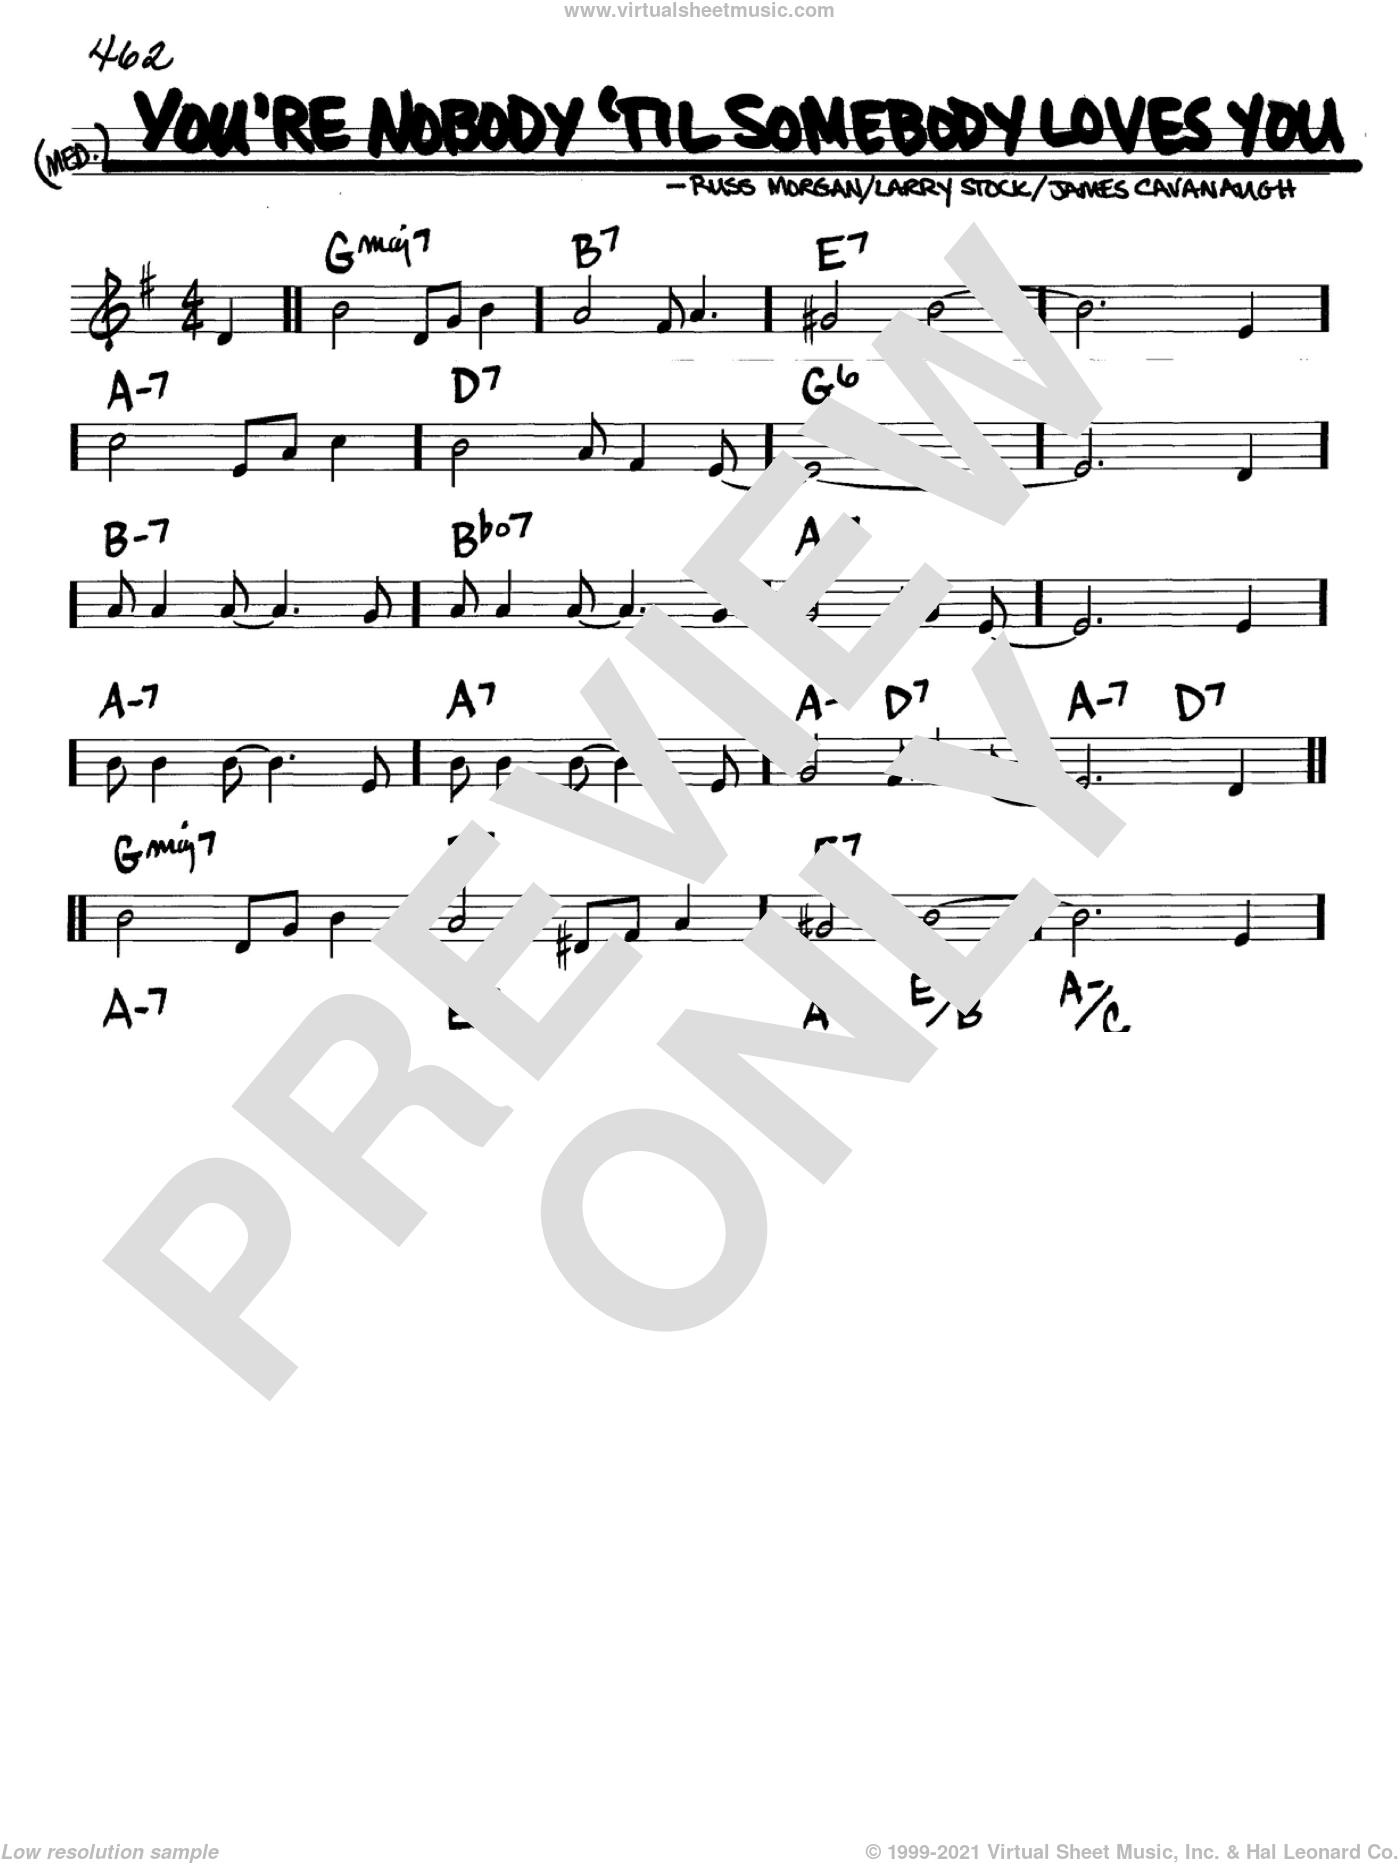 You're Nobody 'Til Somebody Loves You sheet music for voice and other instruments (C) by Dean Martin, Frank Sinatra, James Cavanaugh, Larry Stock and Russ Morgan. Score Image Preview.